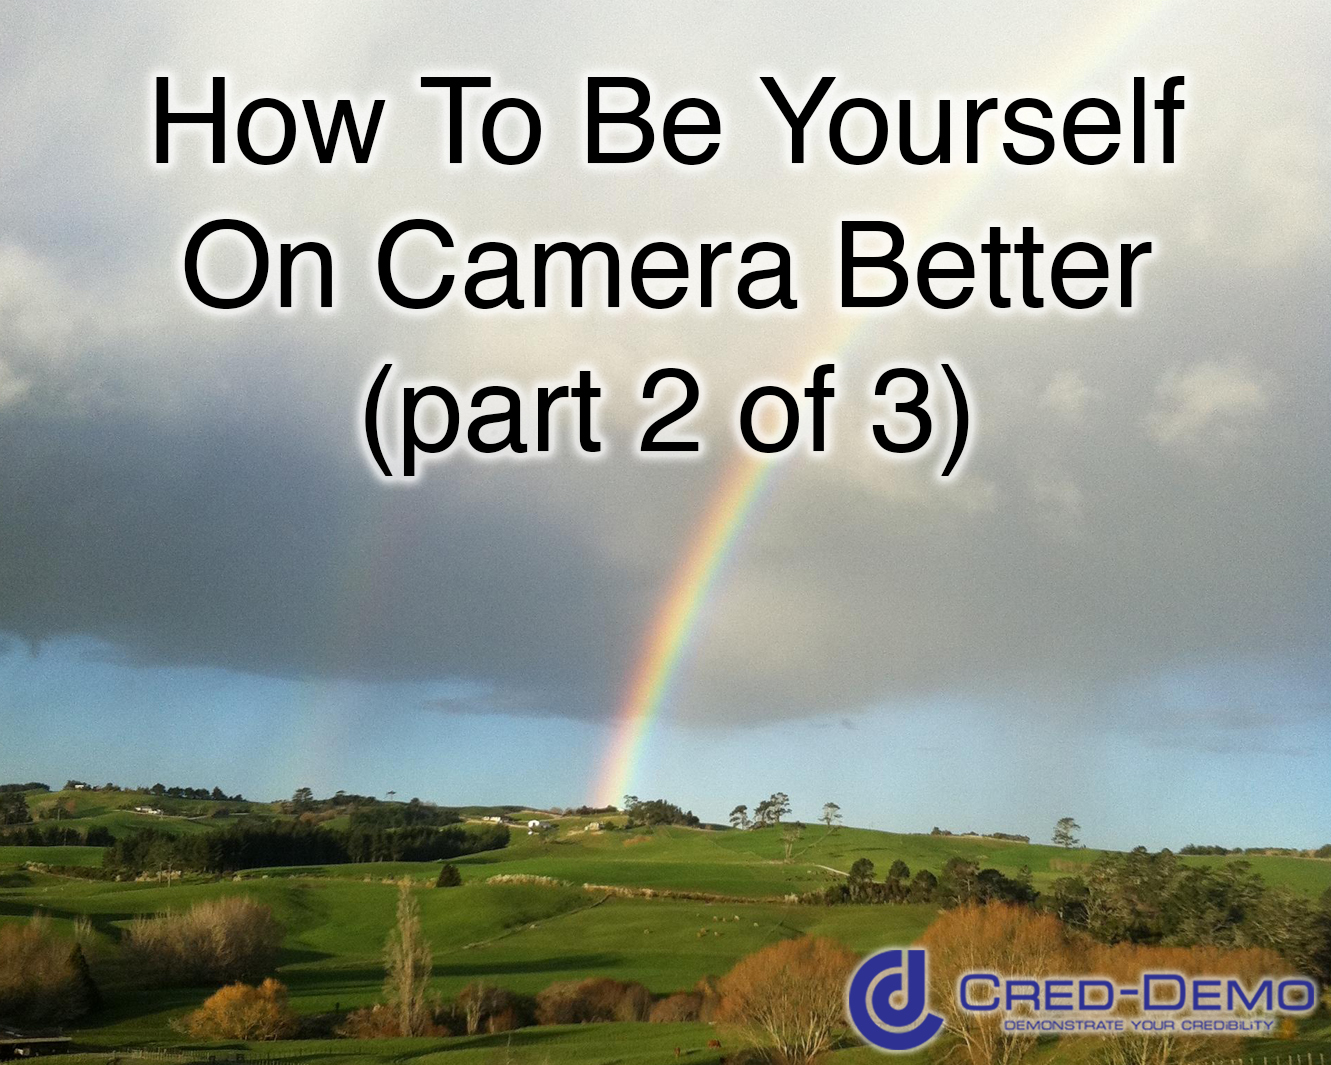 How To Be Yourself On Camera Better 2 of 3